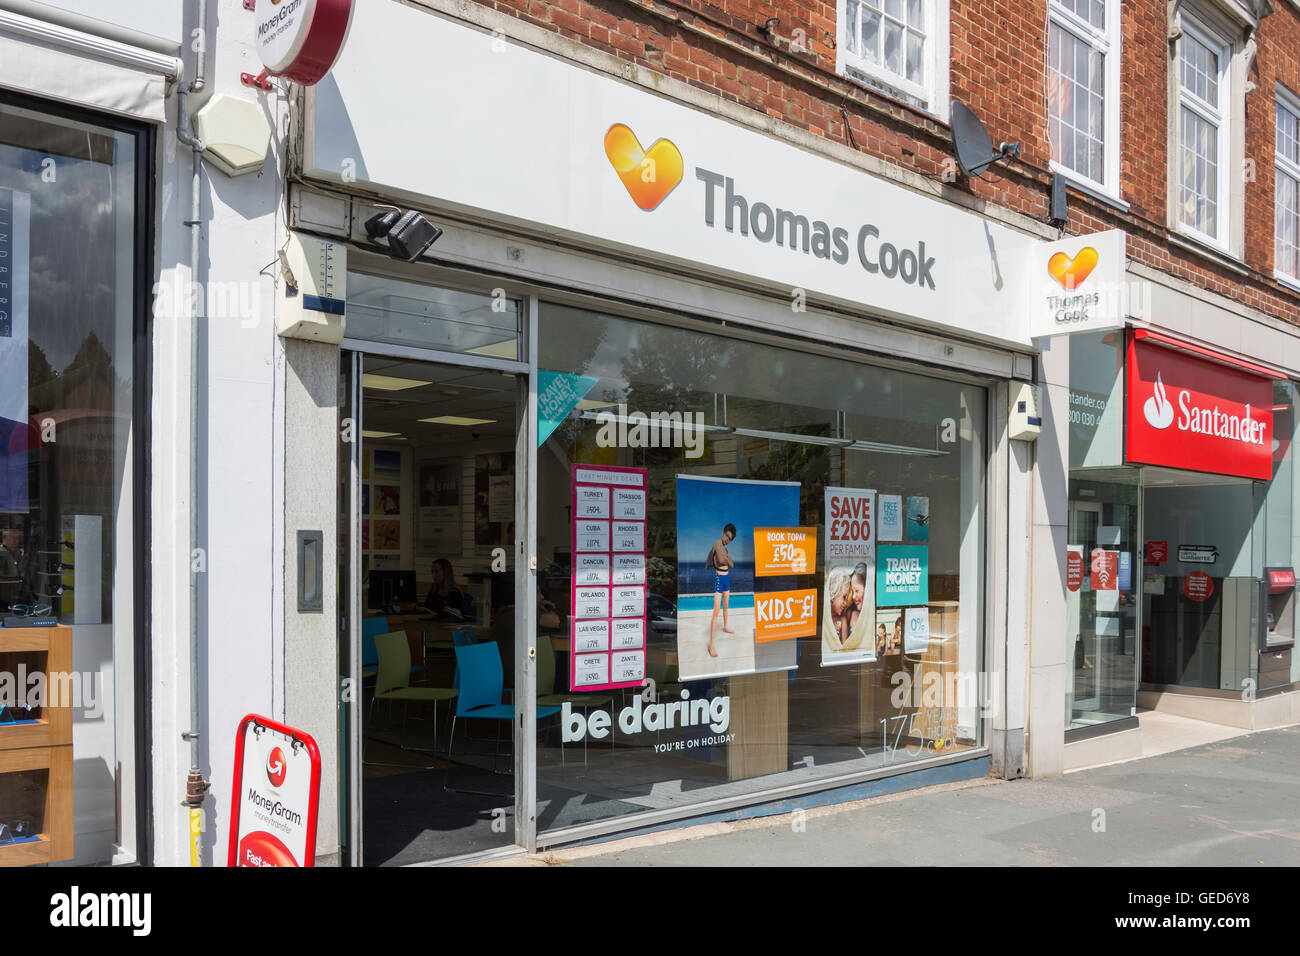 Thomas Cook Travel agent, and Banstead High Street, and Banstead, Surrey, Angleterre, Royaume-Uni Photo Stock